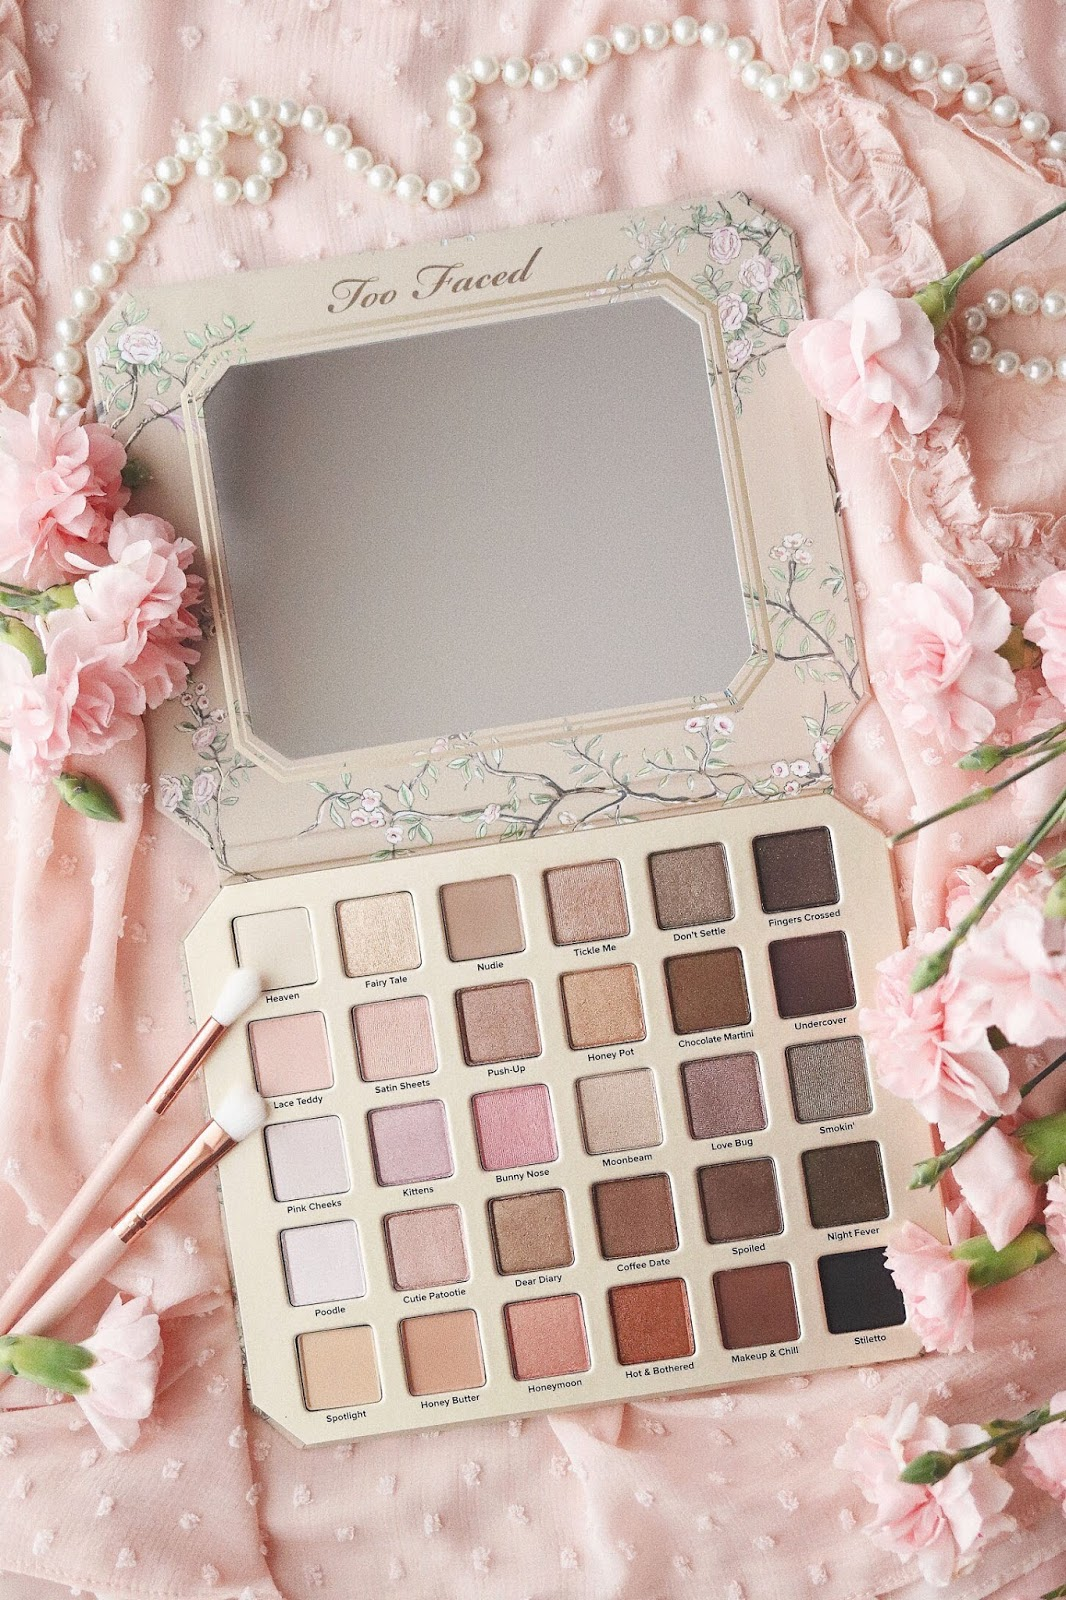 Natural Love Palette , TooFaced , Printemps Eté 2017, Love Light , Love Light Prismatic Highlighter , Romantic Palette , Natural Eyes ,rose mademoiselle ,rosemademoiselle , blog beauté ,revue , avis , swatch ,paris , beauté ,turoriel,